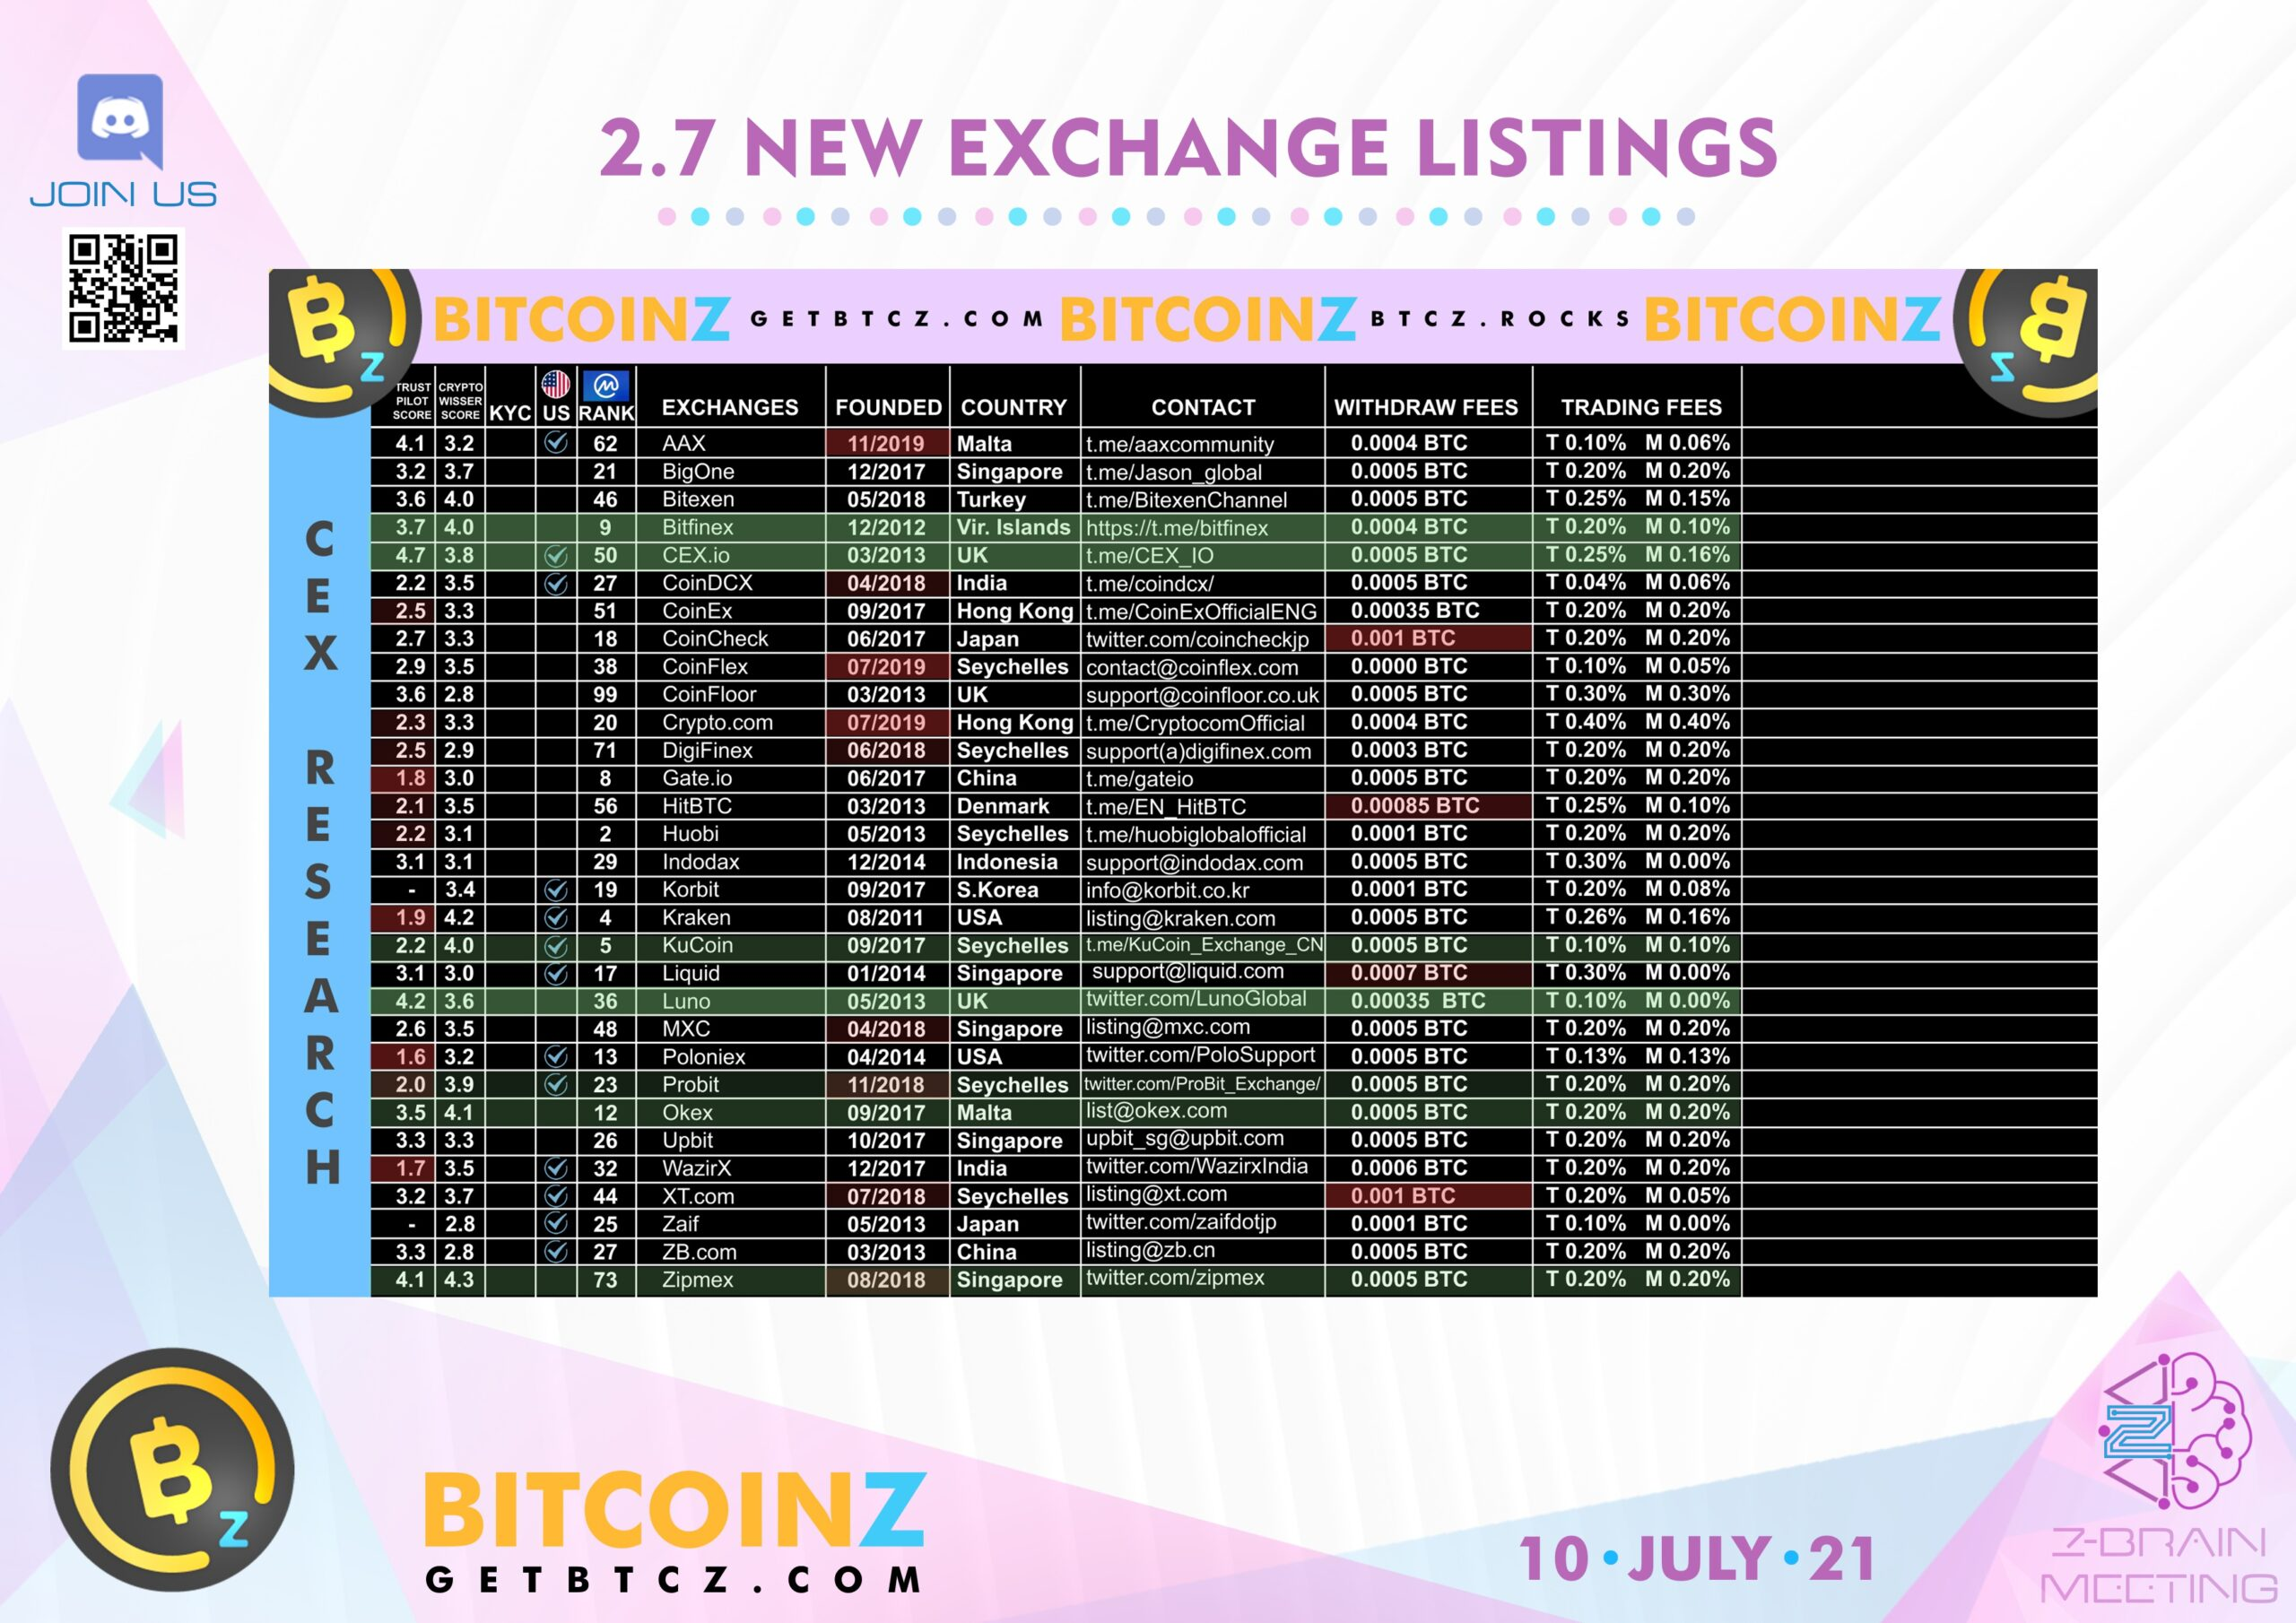 Exchanges Research by BITCOINZ